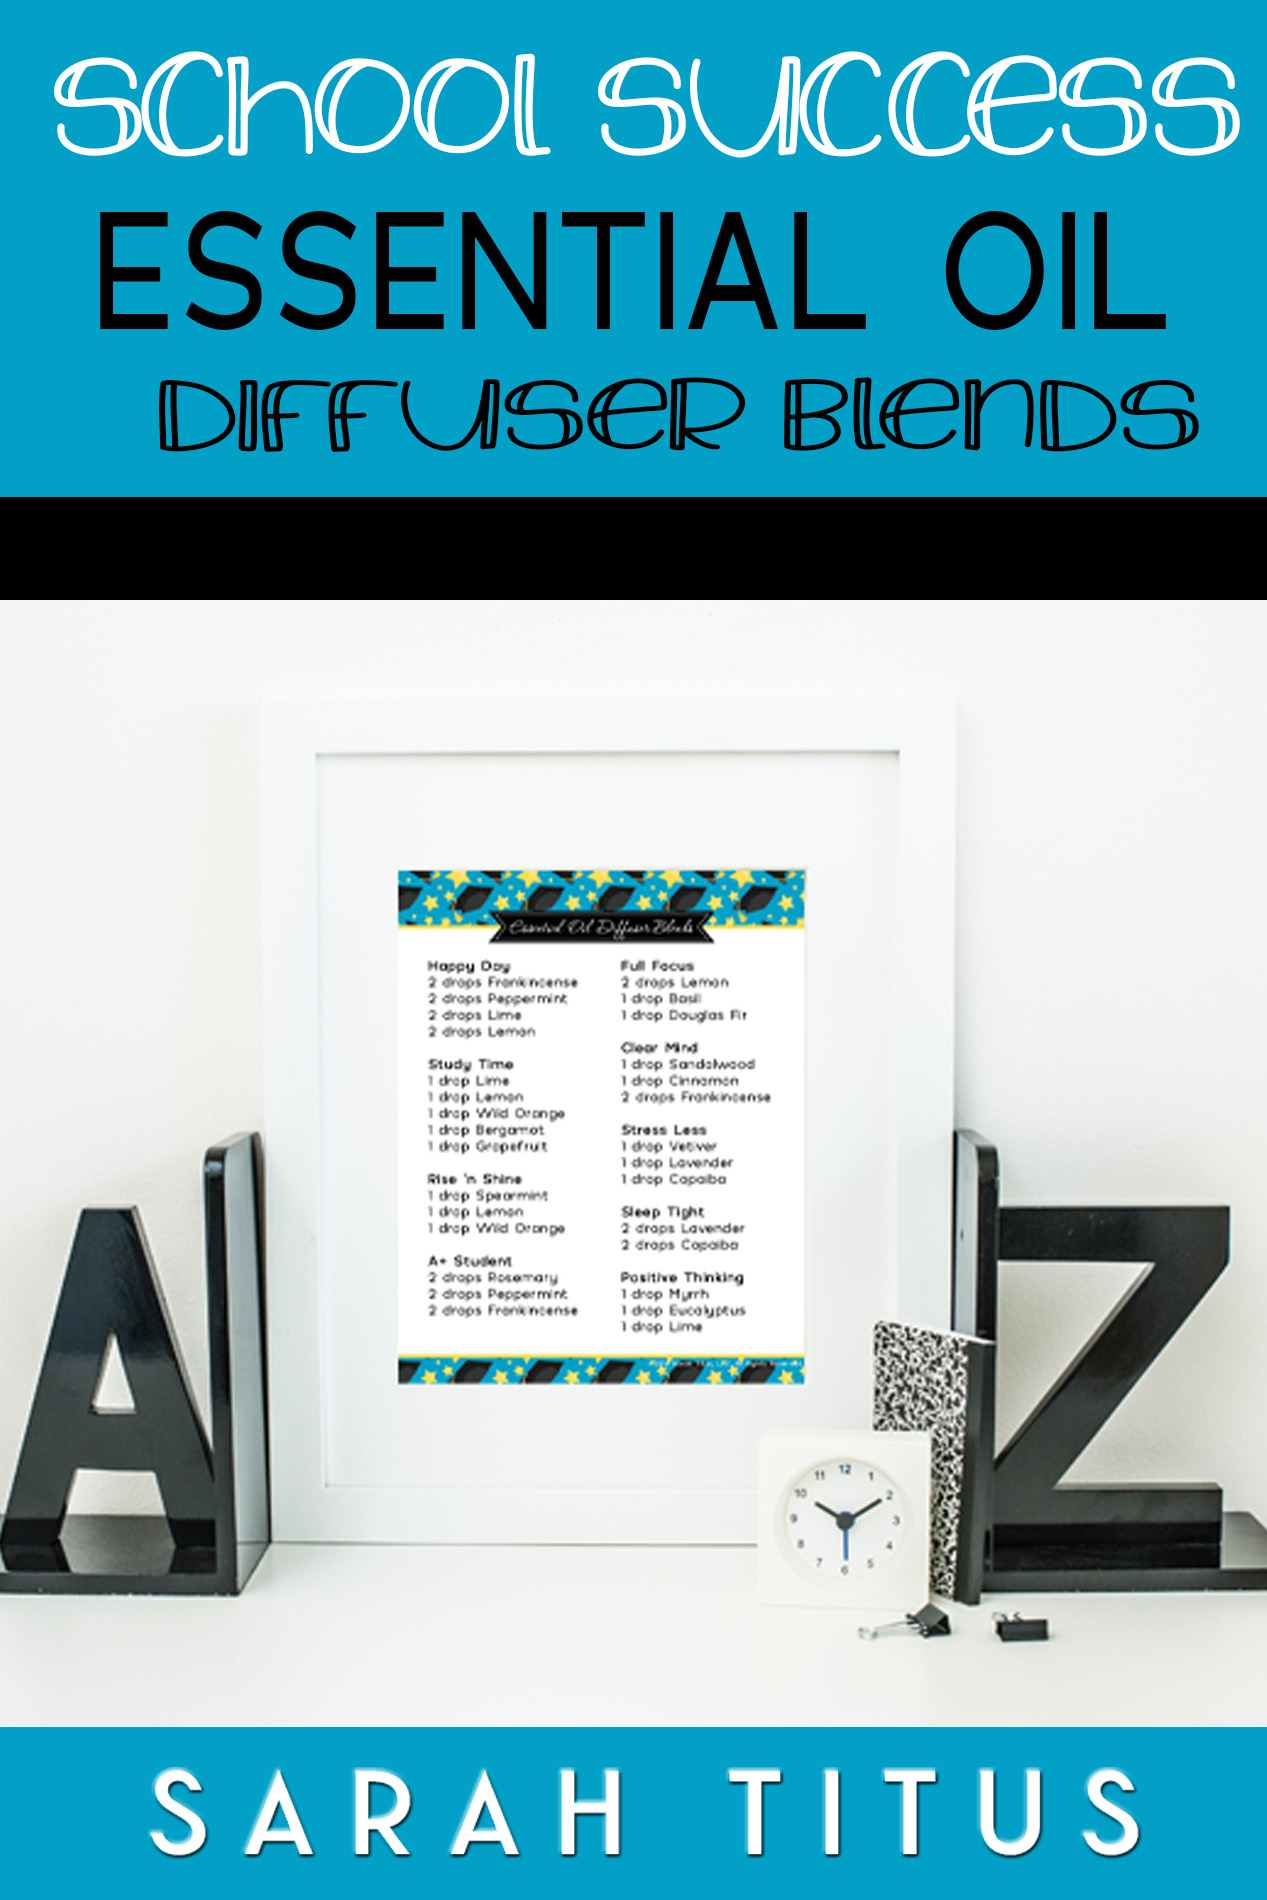 It's the end of the school year, and things are crazy. You want your kids to do well in school, you just have to keep them on track a smidge longer! These School Success Essential Oil Diffuser Blends will help affect them in a positive way! #SchoolSuccess #EssentialOils #StressLess #SleepTight #PositiveThinking